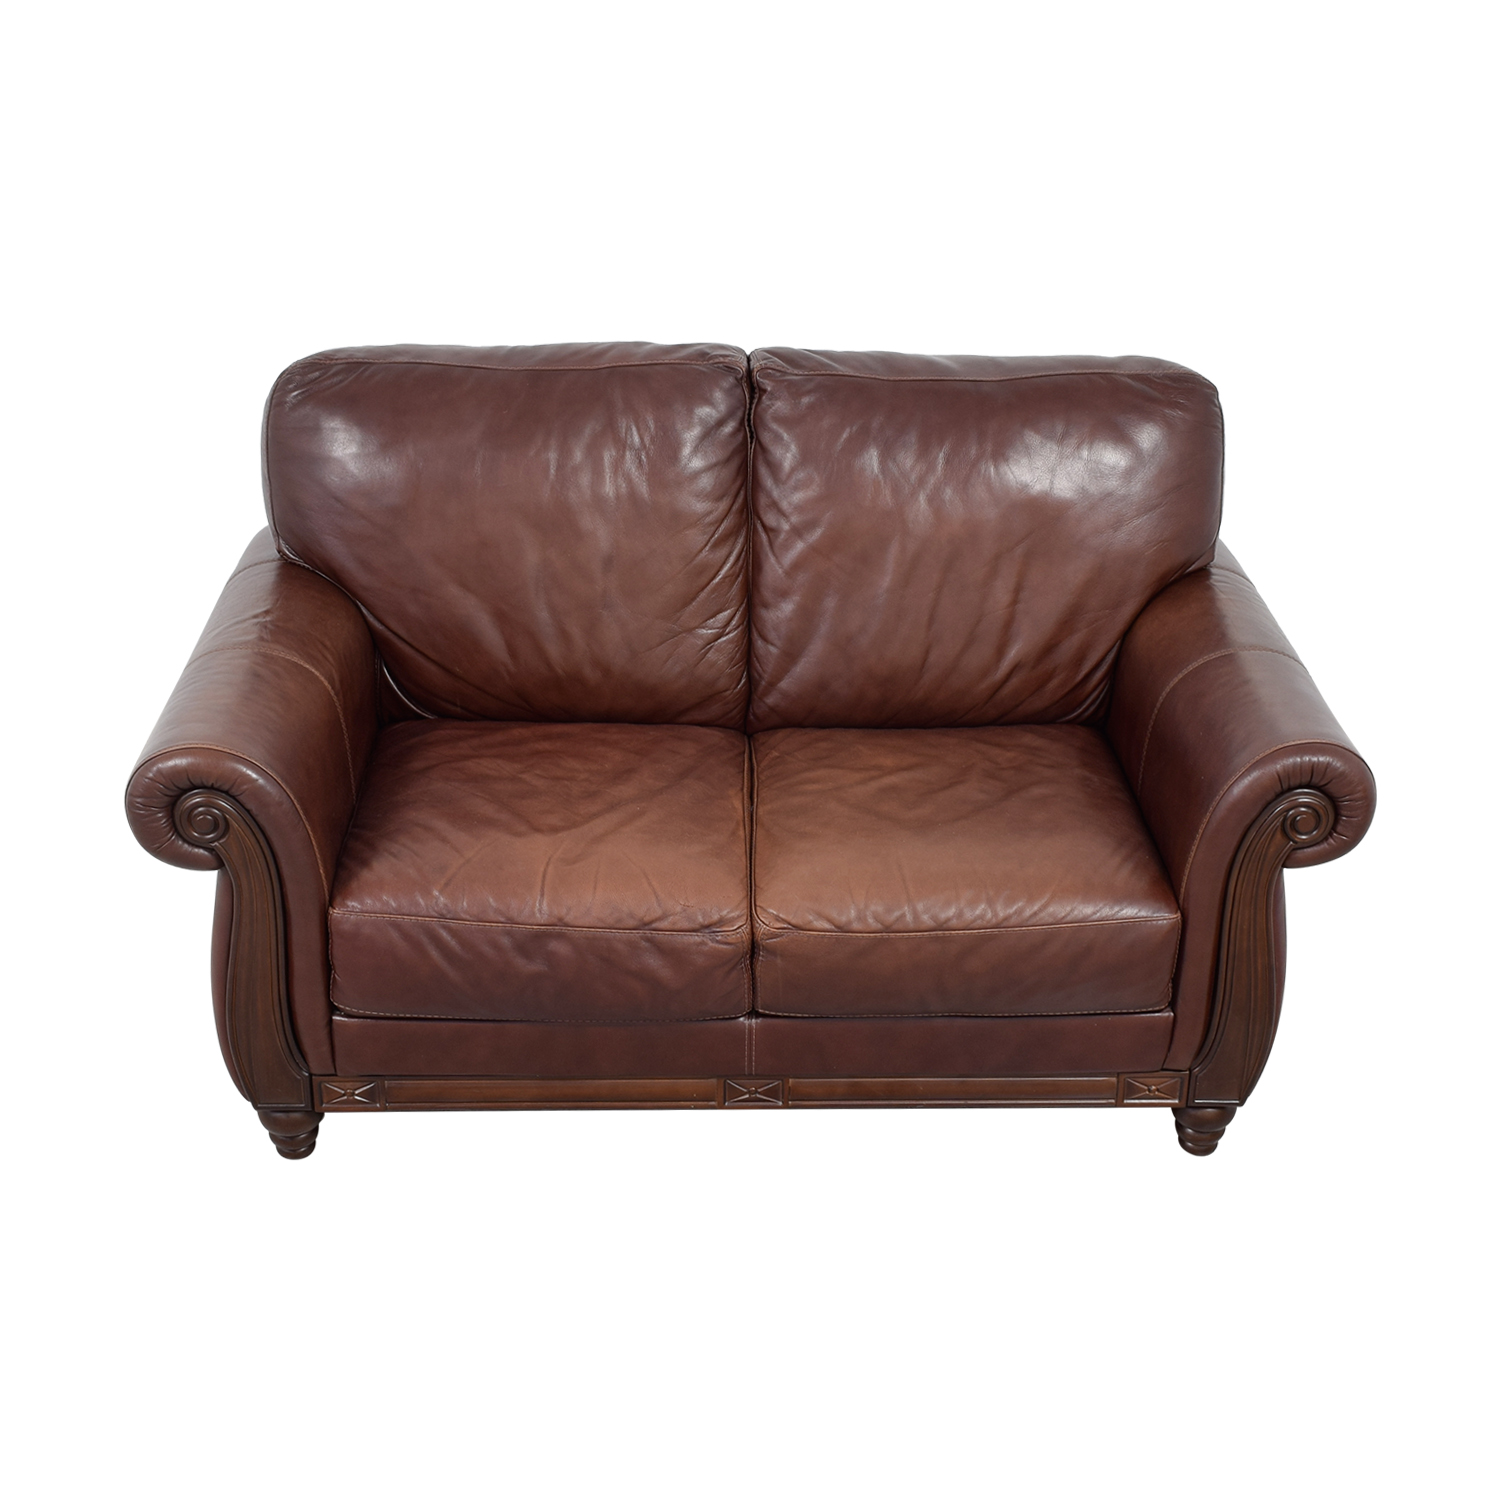 Macy's Macy's Brown Leather Two-Cushion Loveseat